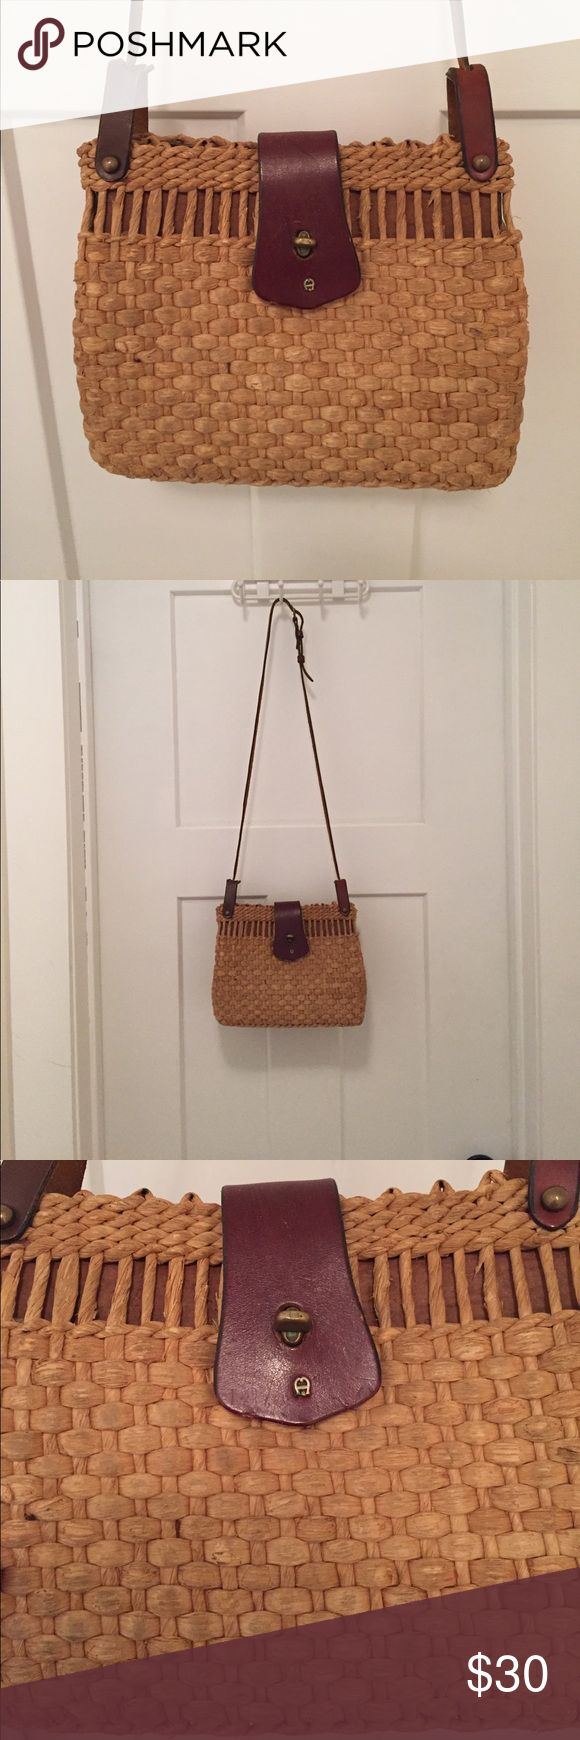 Leather and straw vintage handbag Great condition straw handbag with leather trim. By eitienne aigner. Has adjustable leather strap with a buckle. Etienne Aigner Bags